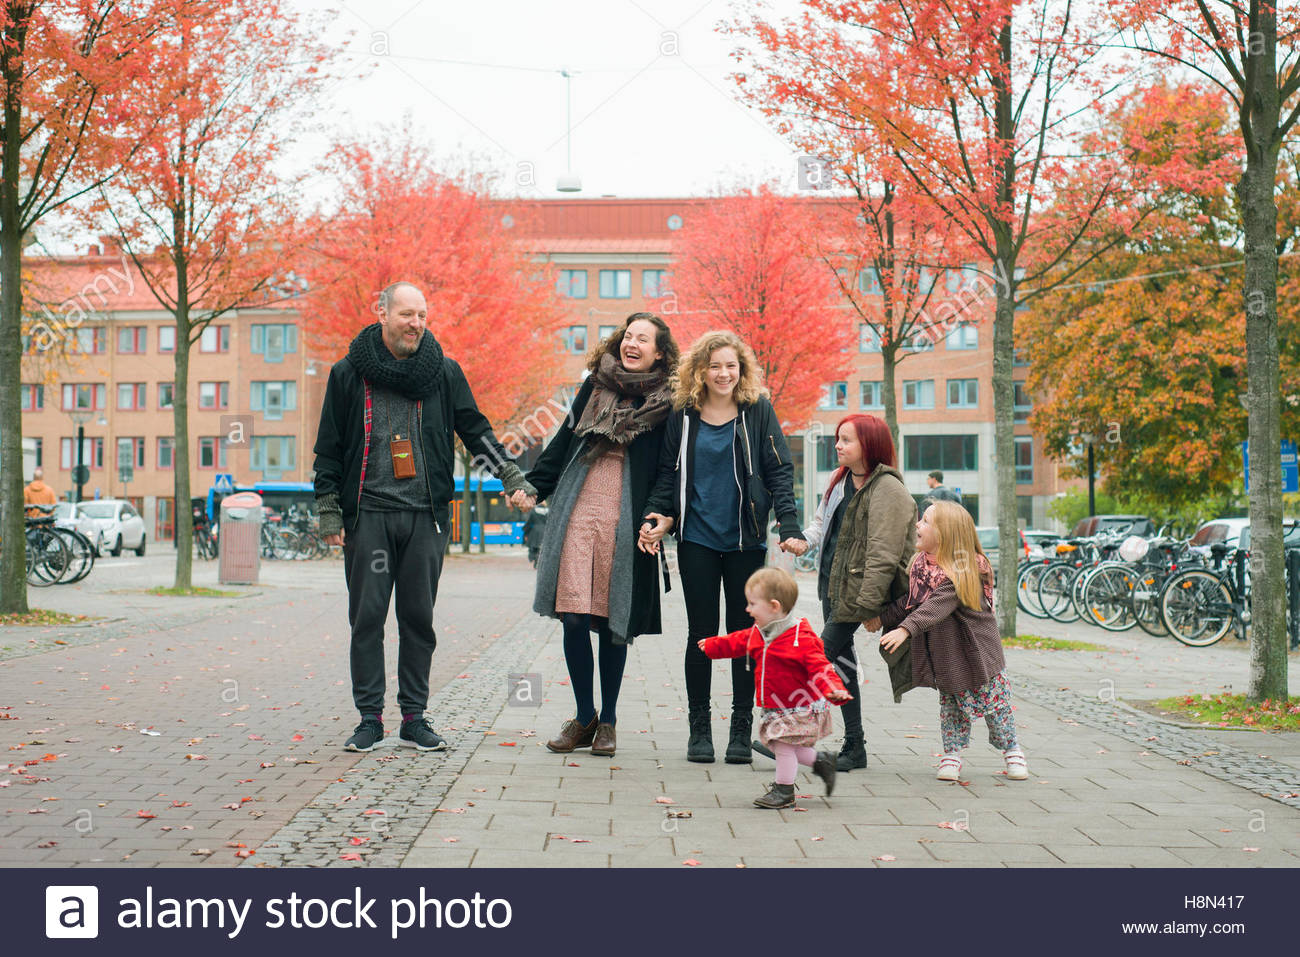 Family with four daughters (2-3, 4-5, 10-11, 16-17) in street Stock Photo